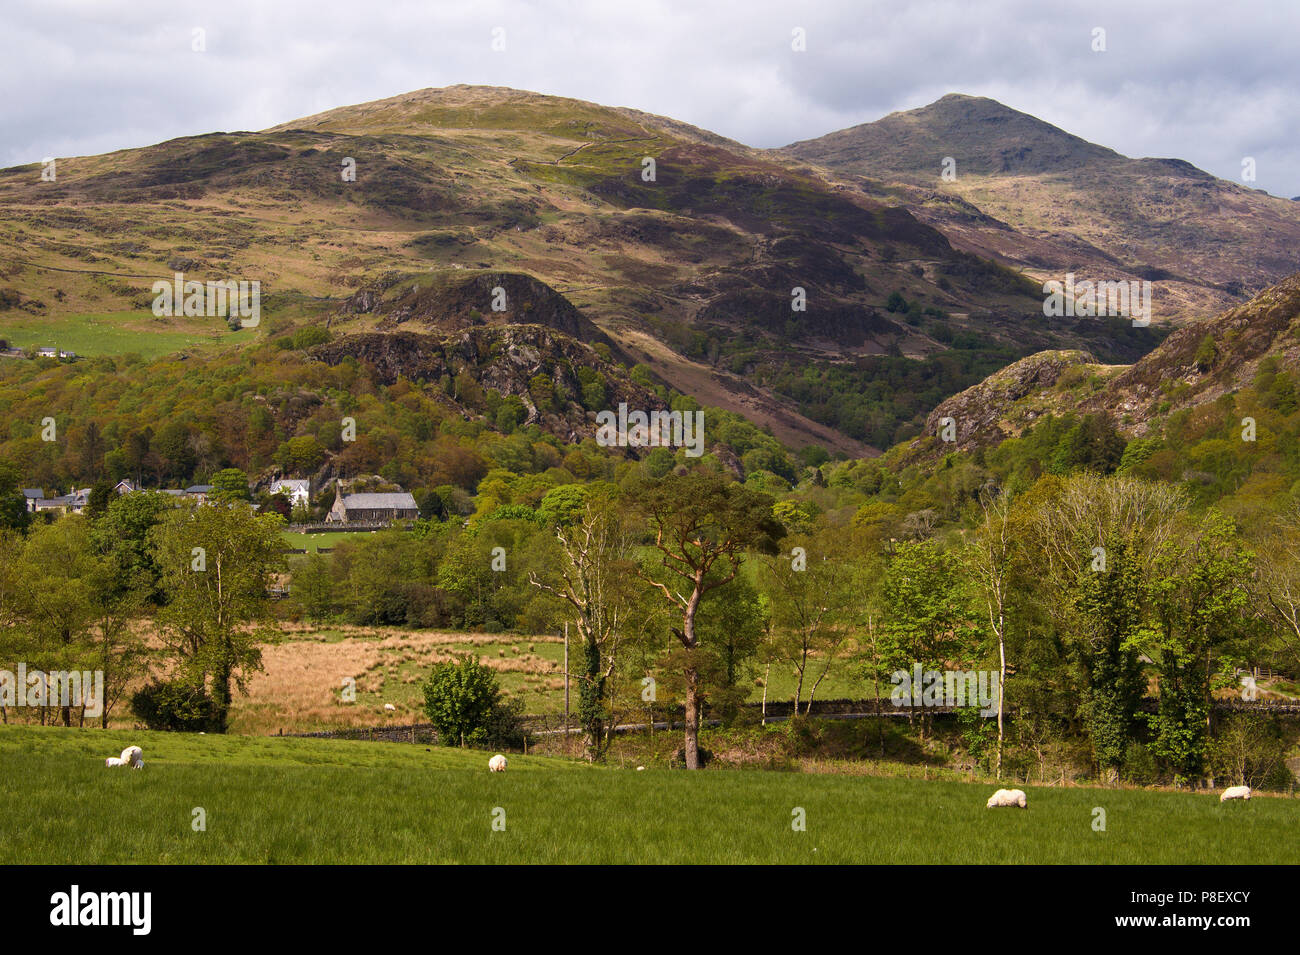 Sheep grazing near the village of Bedgellert with the summit of Mt. Snowdon in the background; Snowdonia National park; Wales; UK Stock Photo